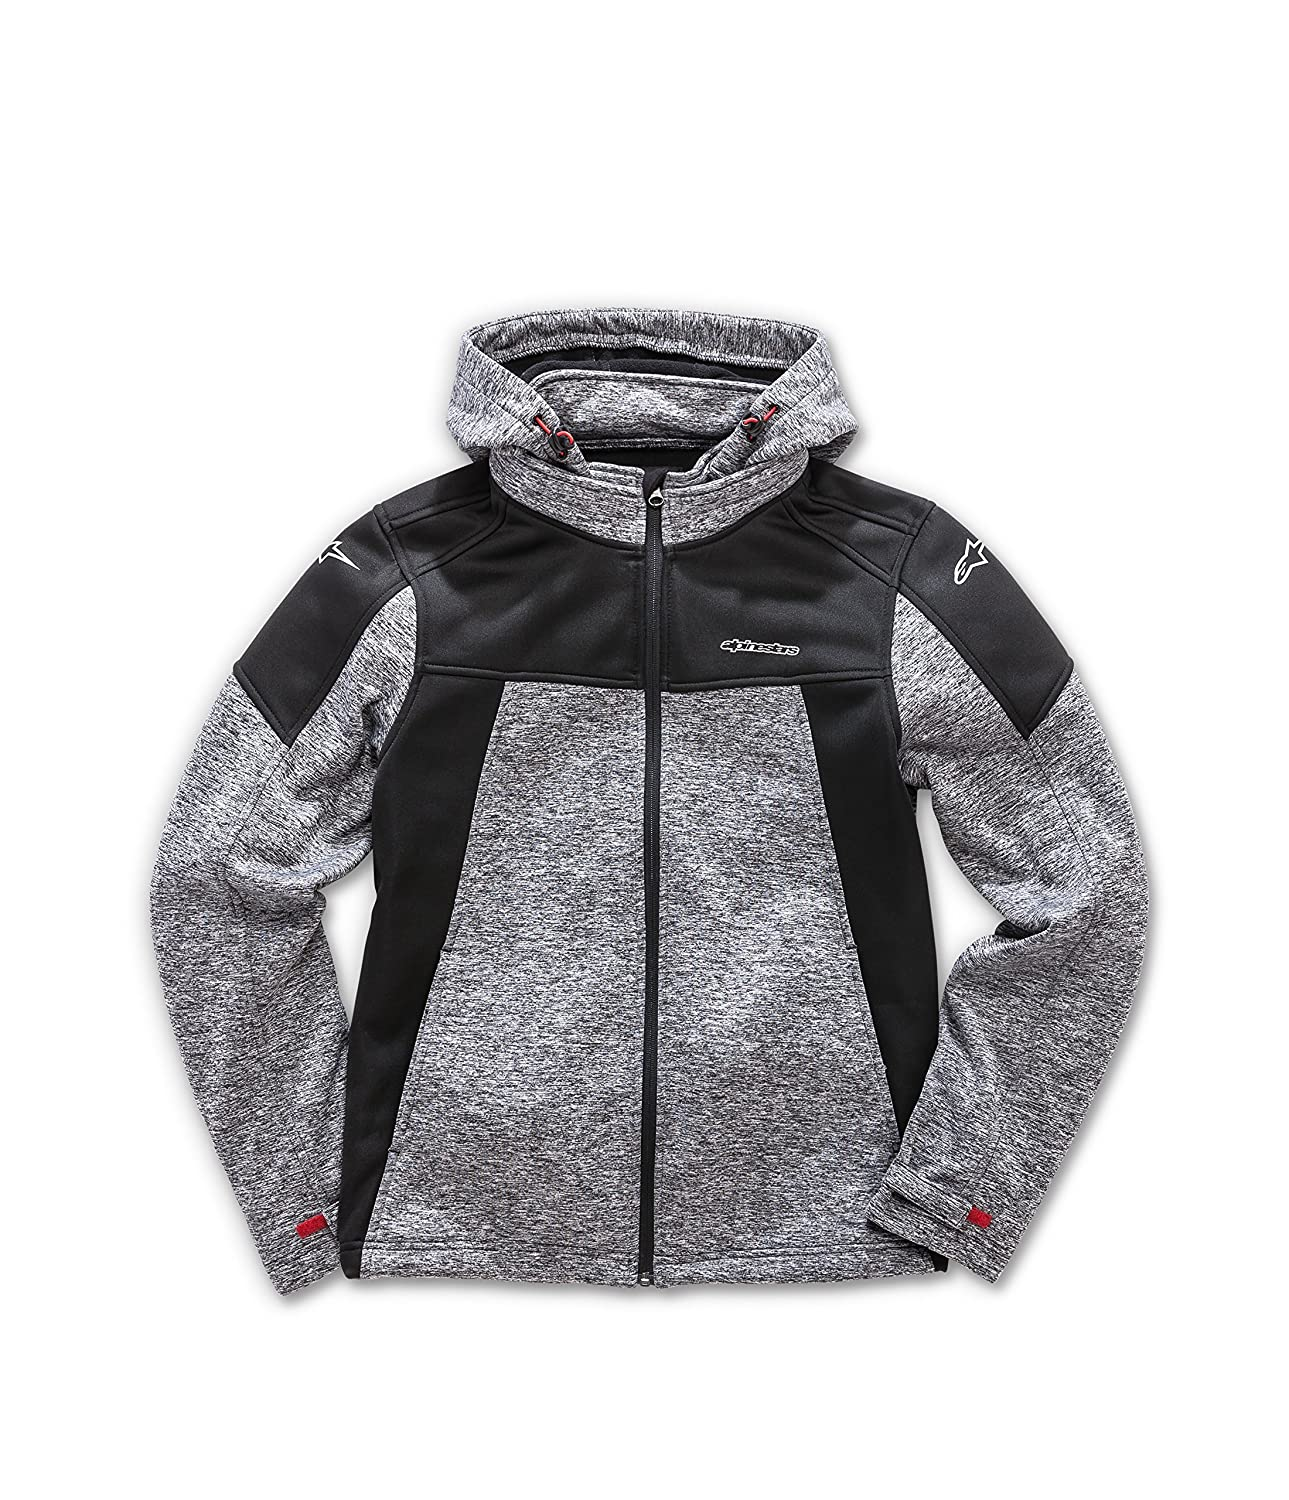 Alpinestars OUTERWEAR メンズ B075G33SK5 X-Large Stratified Charcoal Heather Stratified Charcoal Heather X-Large